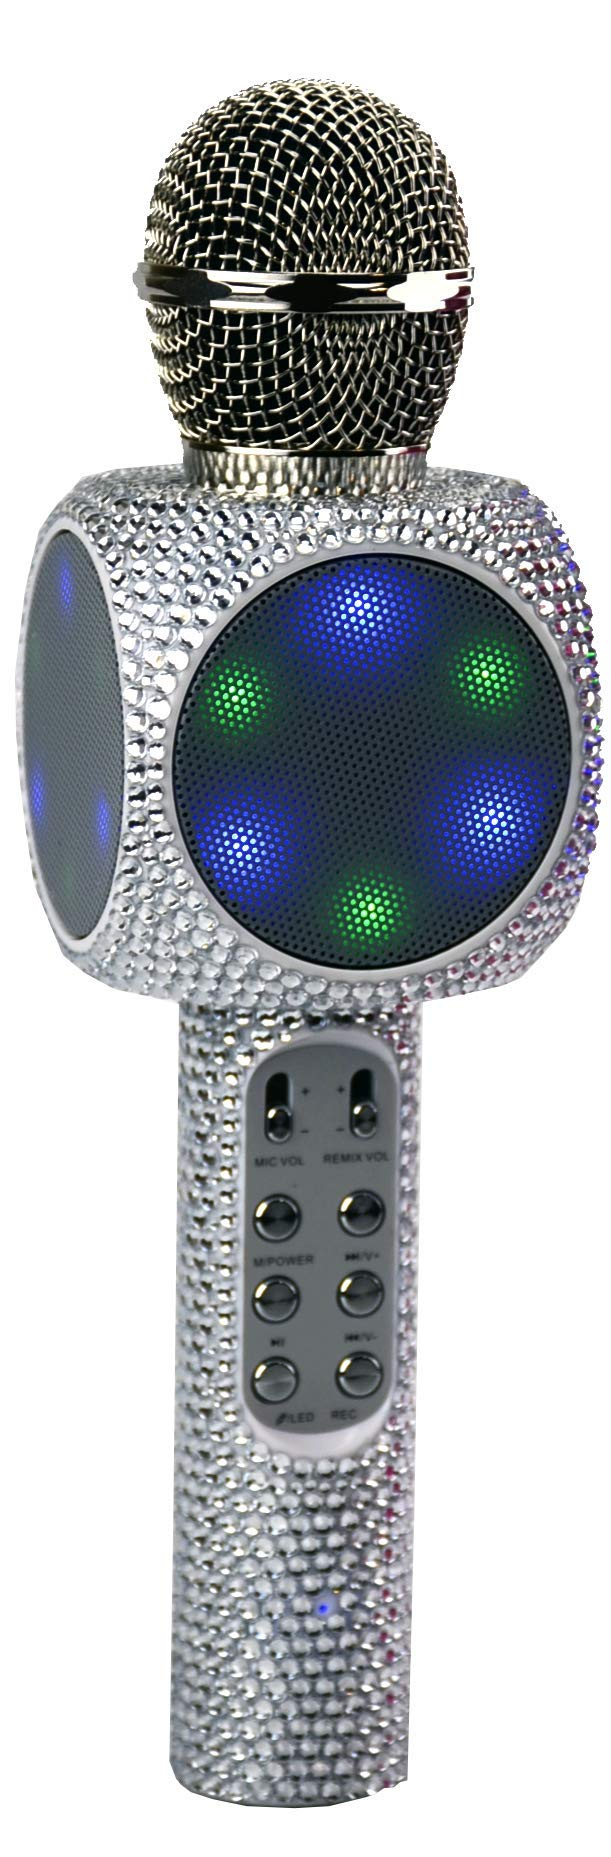 Wireless Express Sing-Along Bling Bluetooth Karaoke Microphone and Bluetooth Stereo Speaker All-in-One by Wireless Express (Image #4)